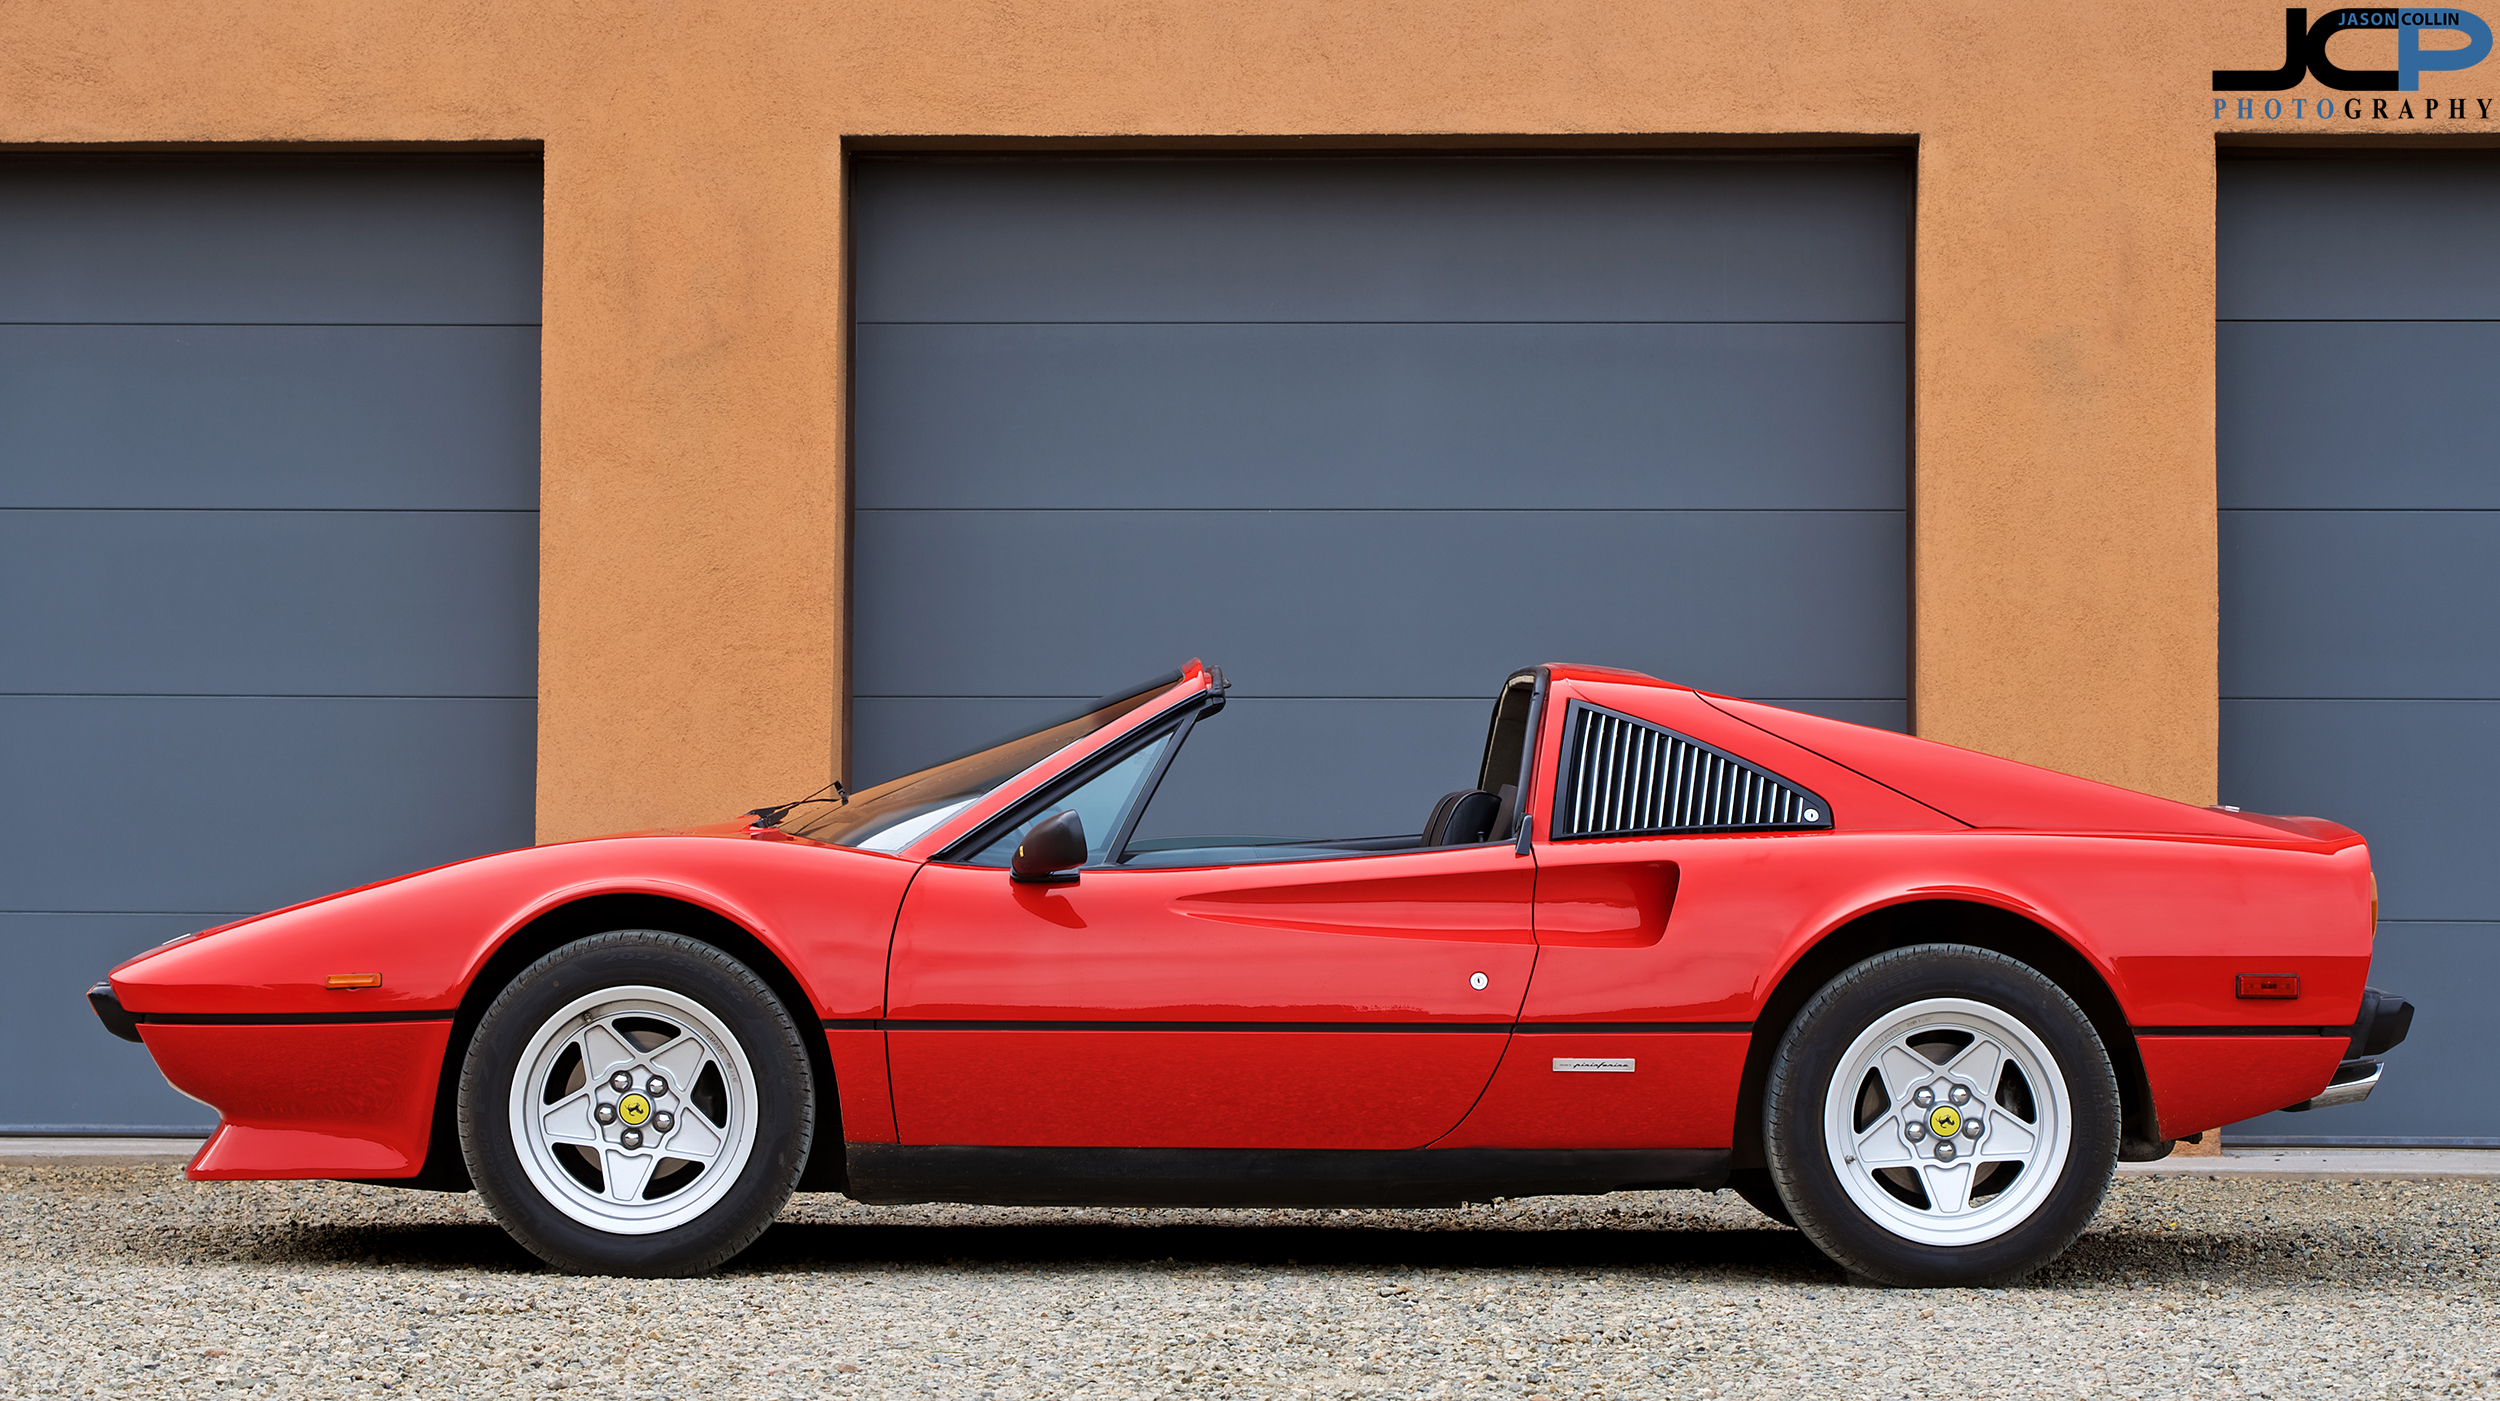 If you ever watched Magnum PI, then you will recognize the Ferrari 308 GTS - Photographed in Santa Fe, New Mexico with a Nikon D750 & Tamron 70-200mm f/2.8 G2 lens